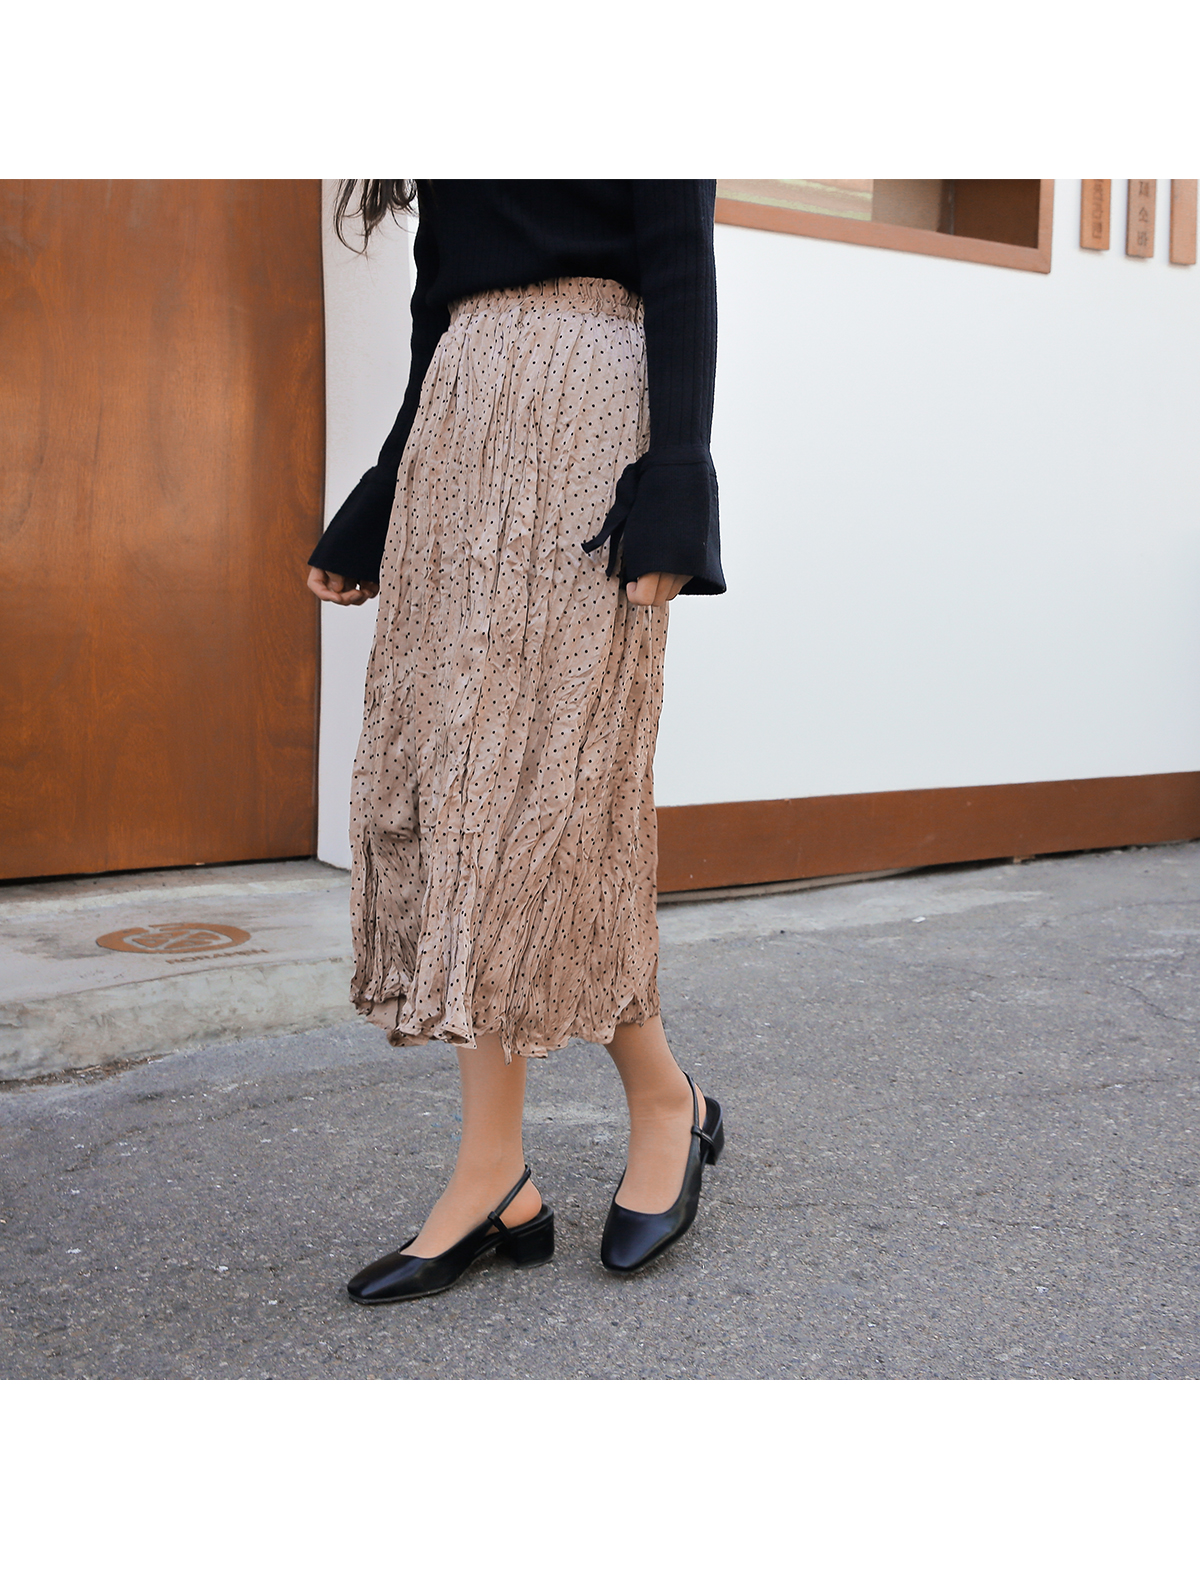 Dot-cut skirt